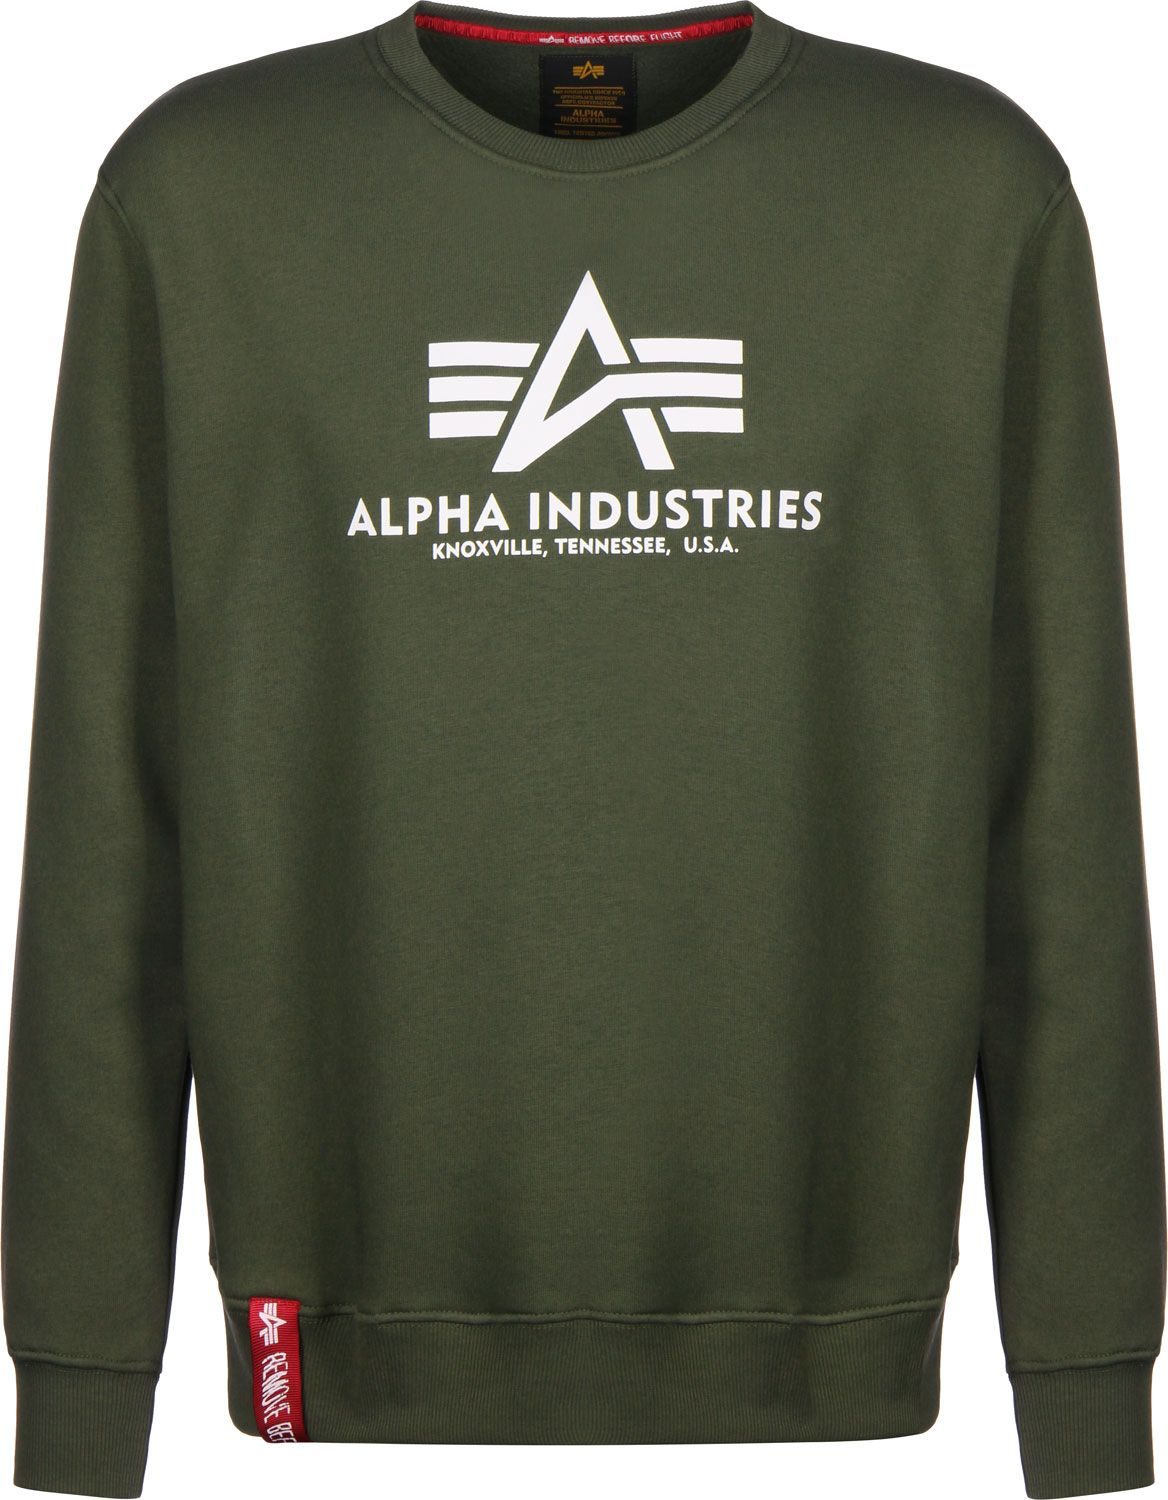 178302-21 Alpha Industries mikina Basic Sweater